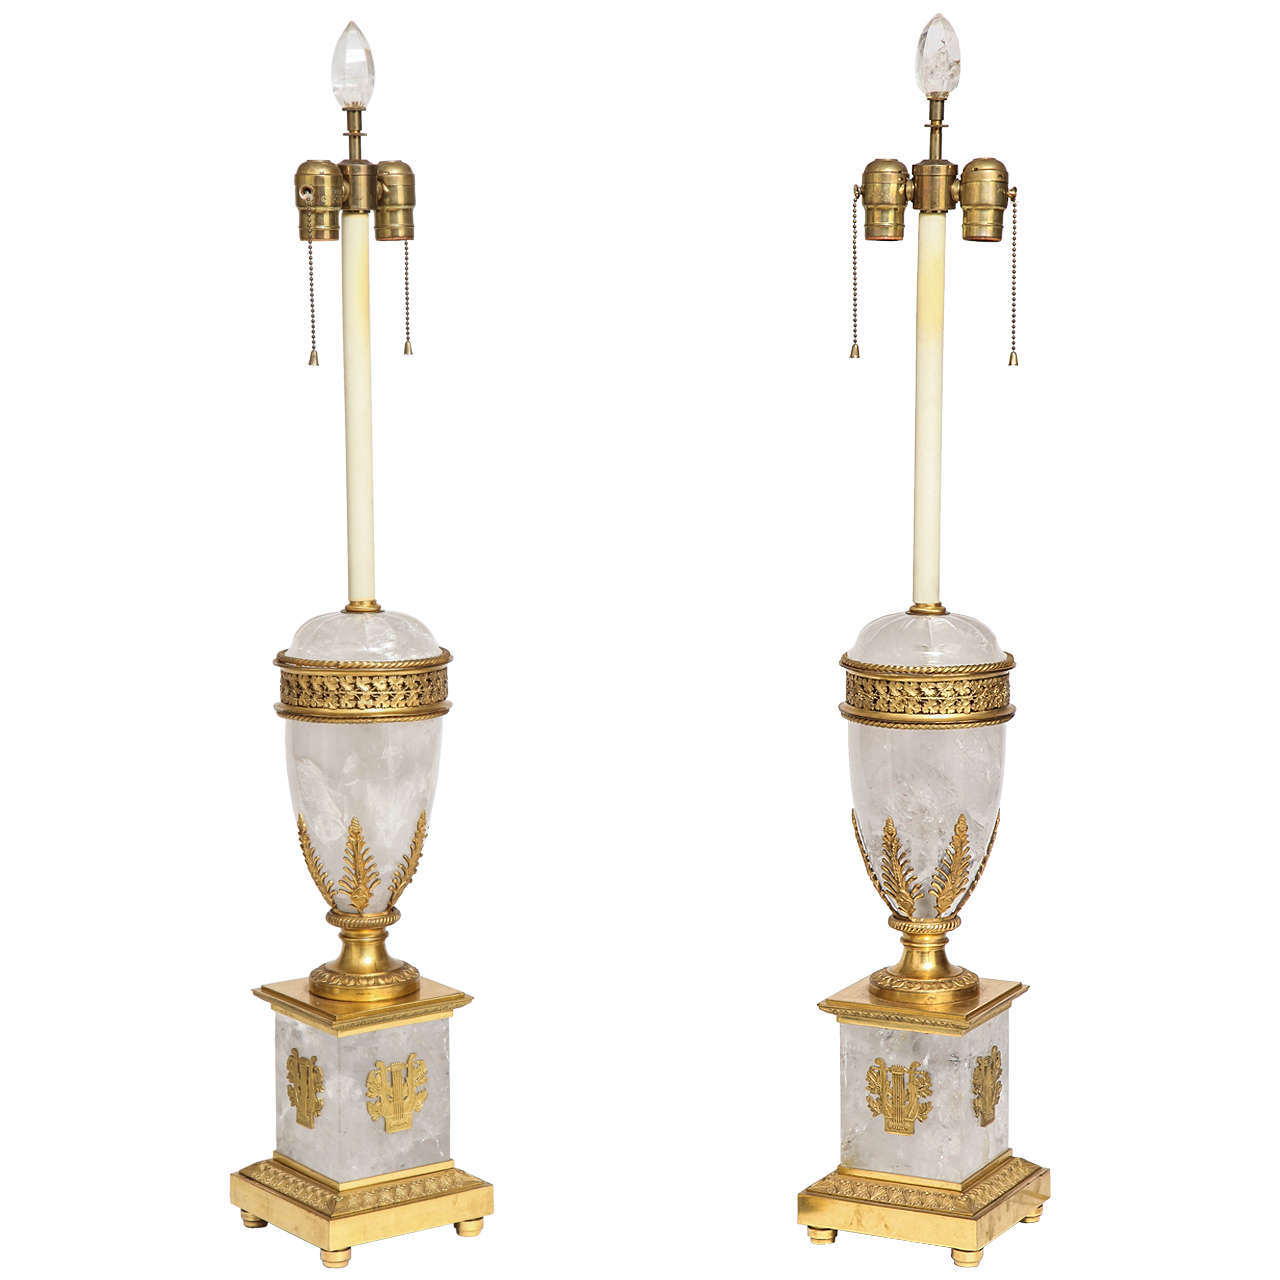 Extraordinary Pair Of Antique French Neoclical Rock Crystal And Ormolu Lamps For